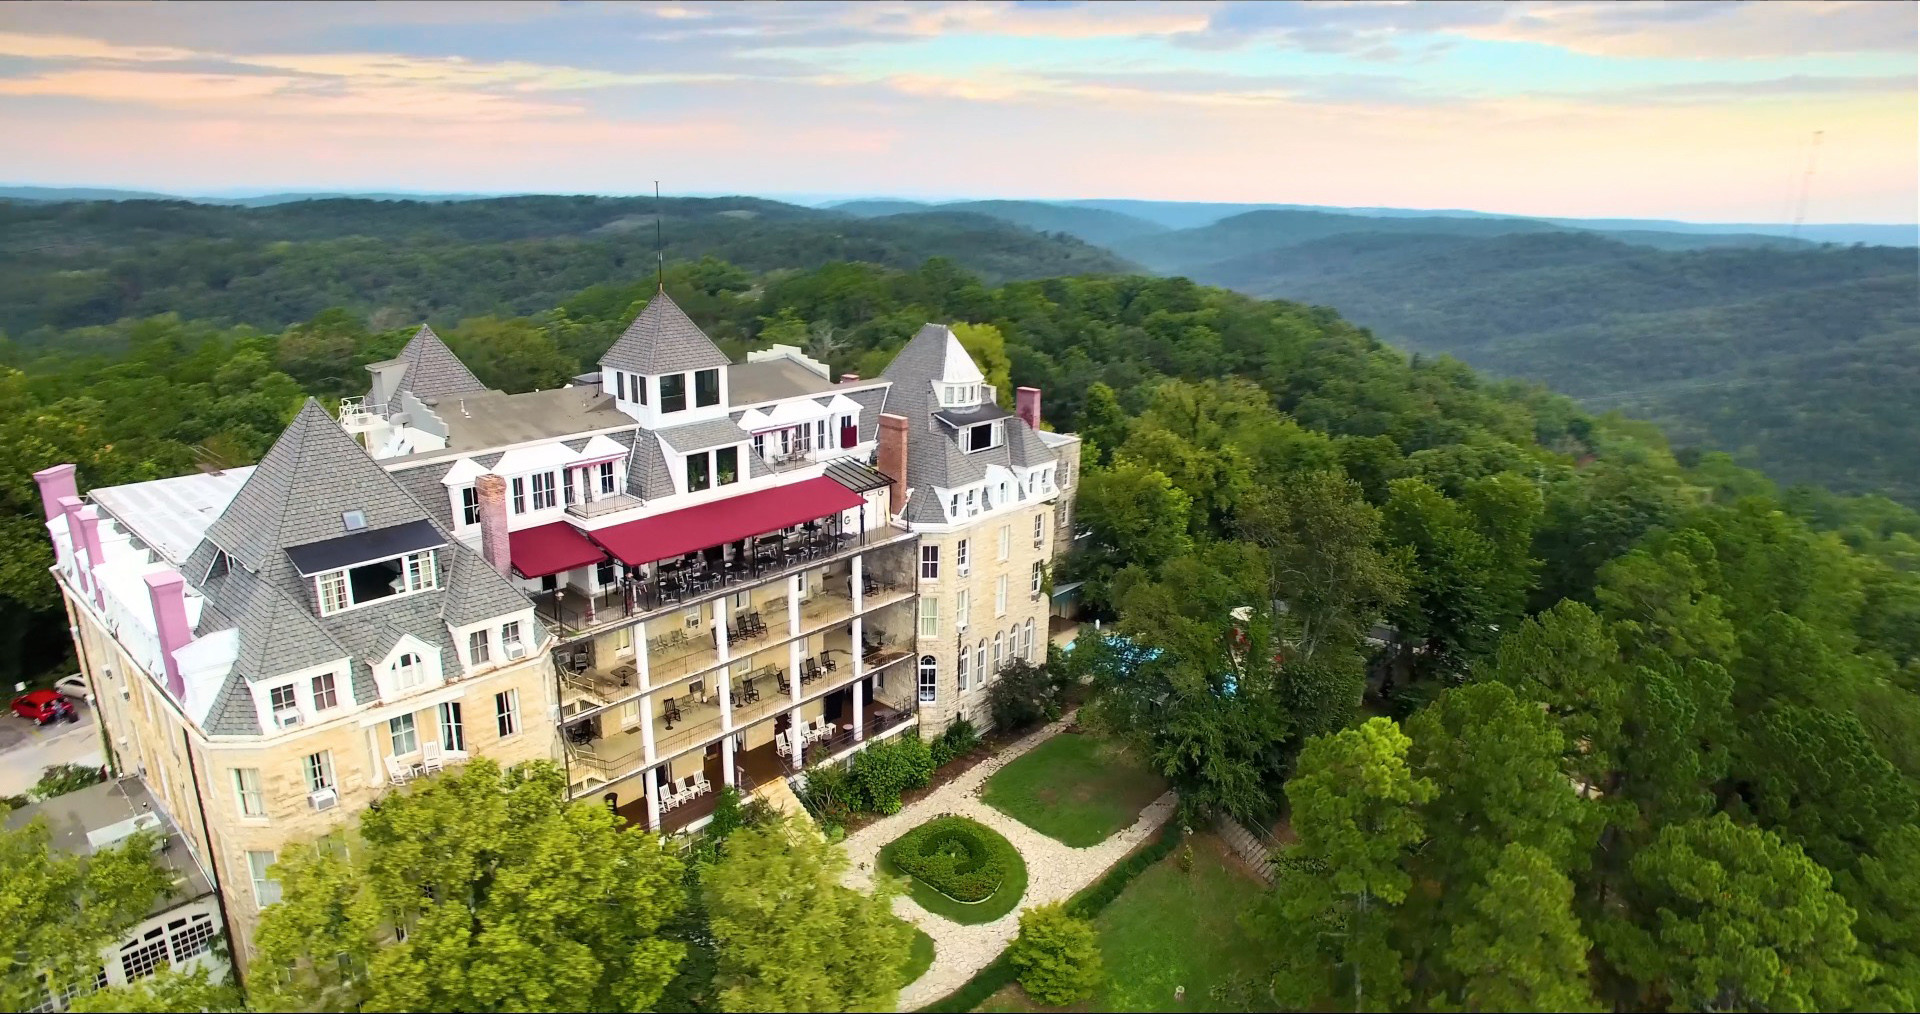 16. 1886 Crescent Hotel & Spa (Eureka Springs, Arkansas)